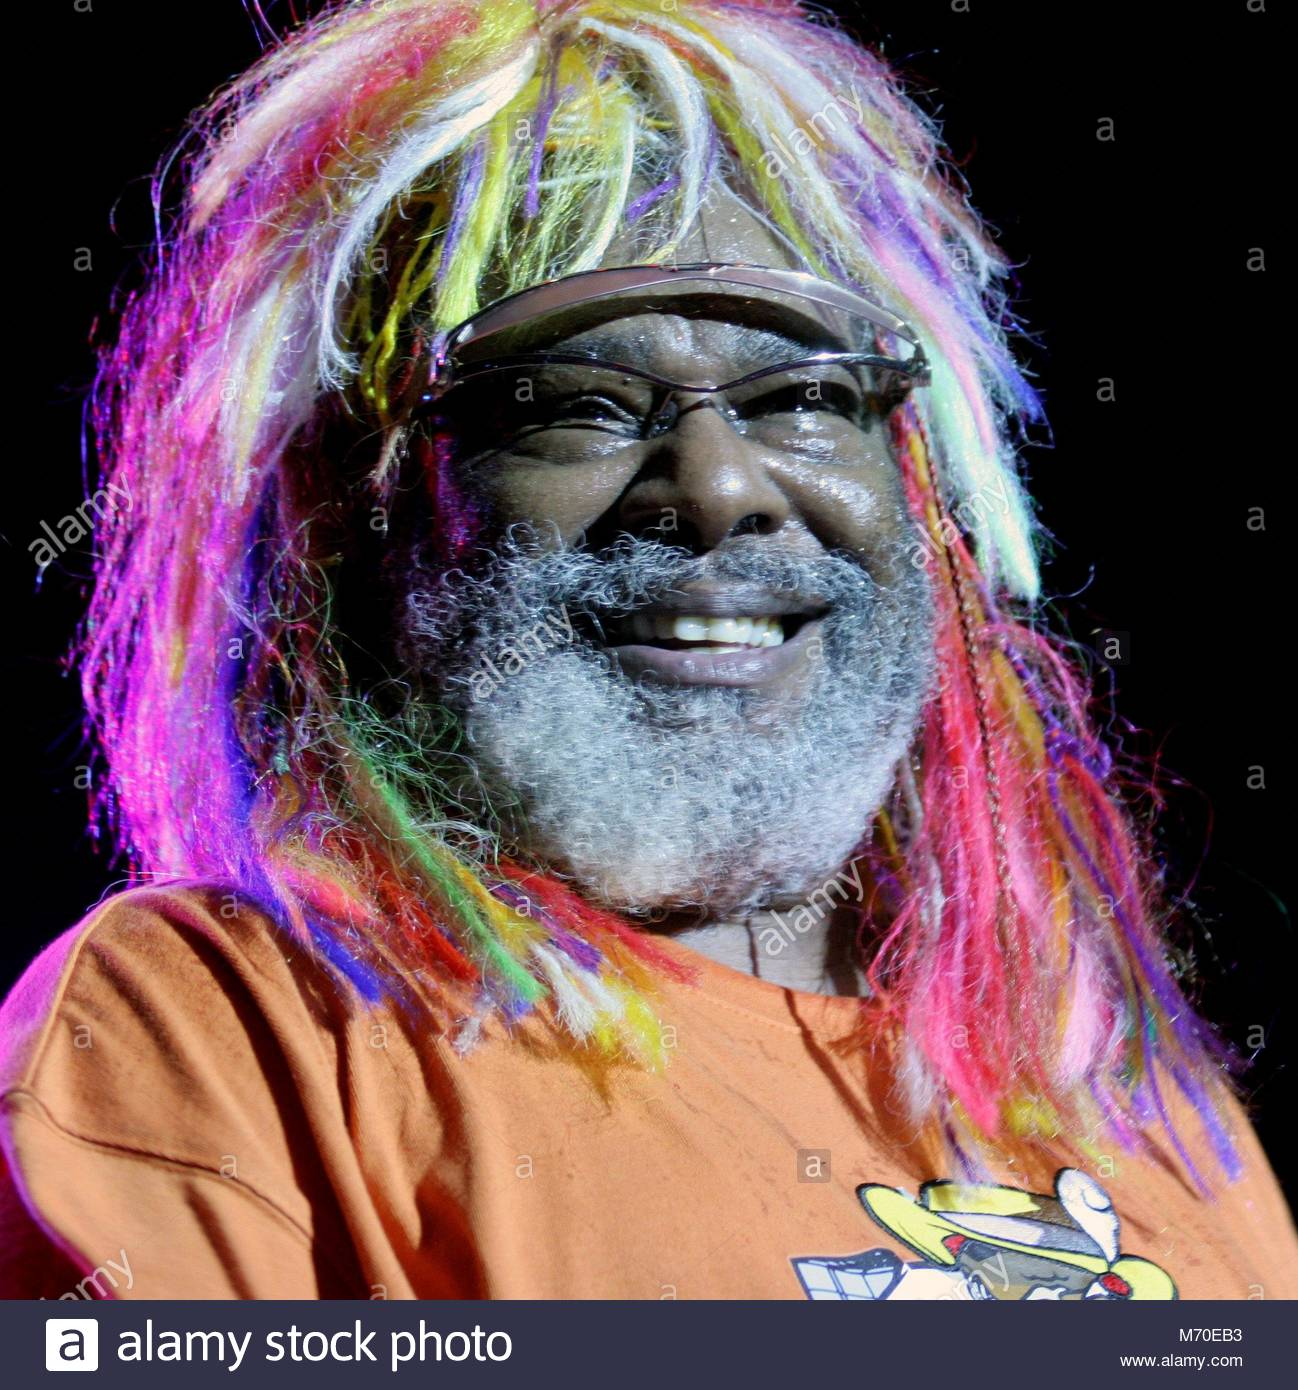 George Clinton performs at Musikfest in Bethlehem, PA on Saturday, Aug. 13, 2005. RTHineline / MediaPunch - Stock Image